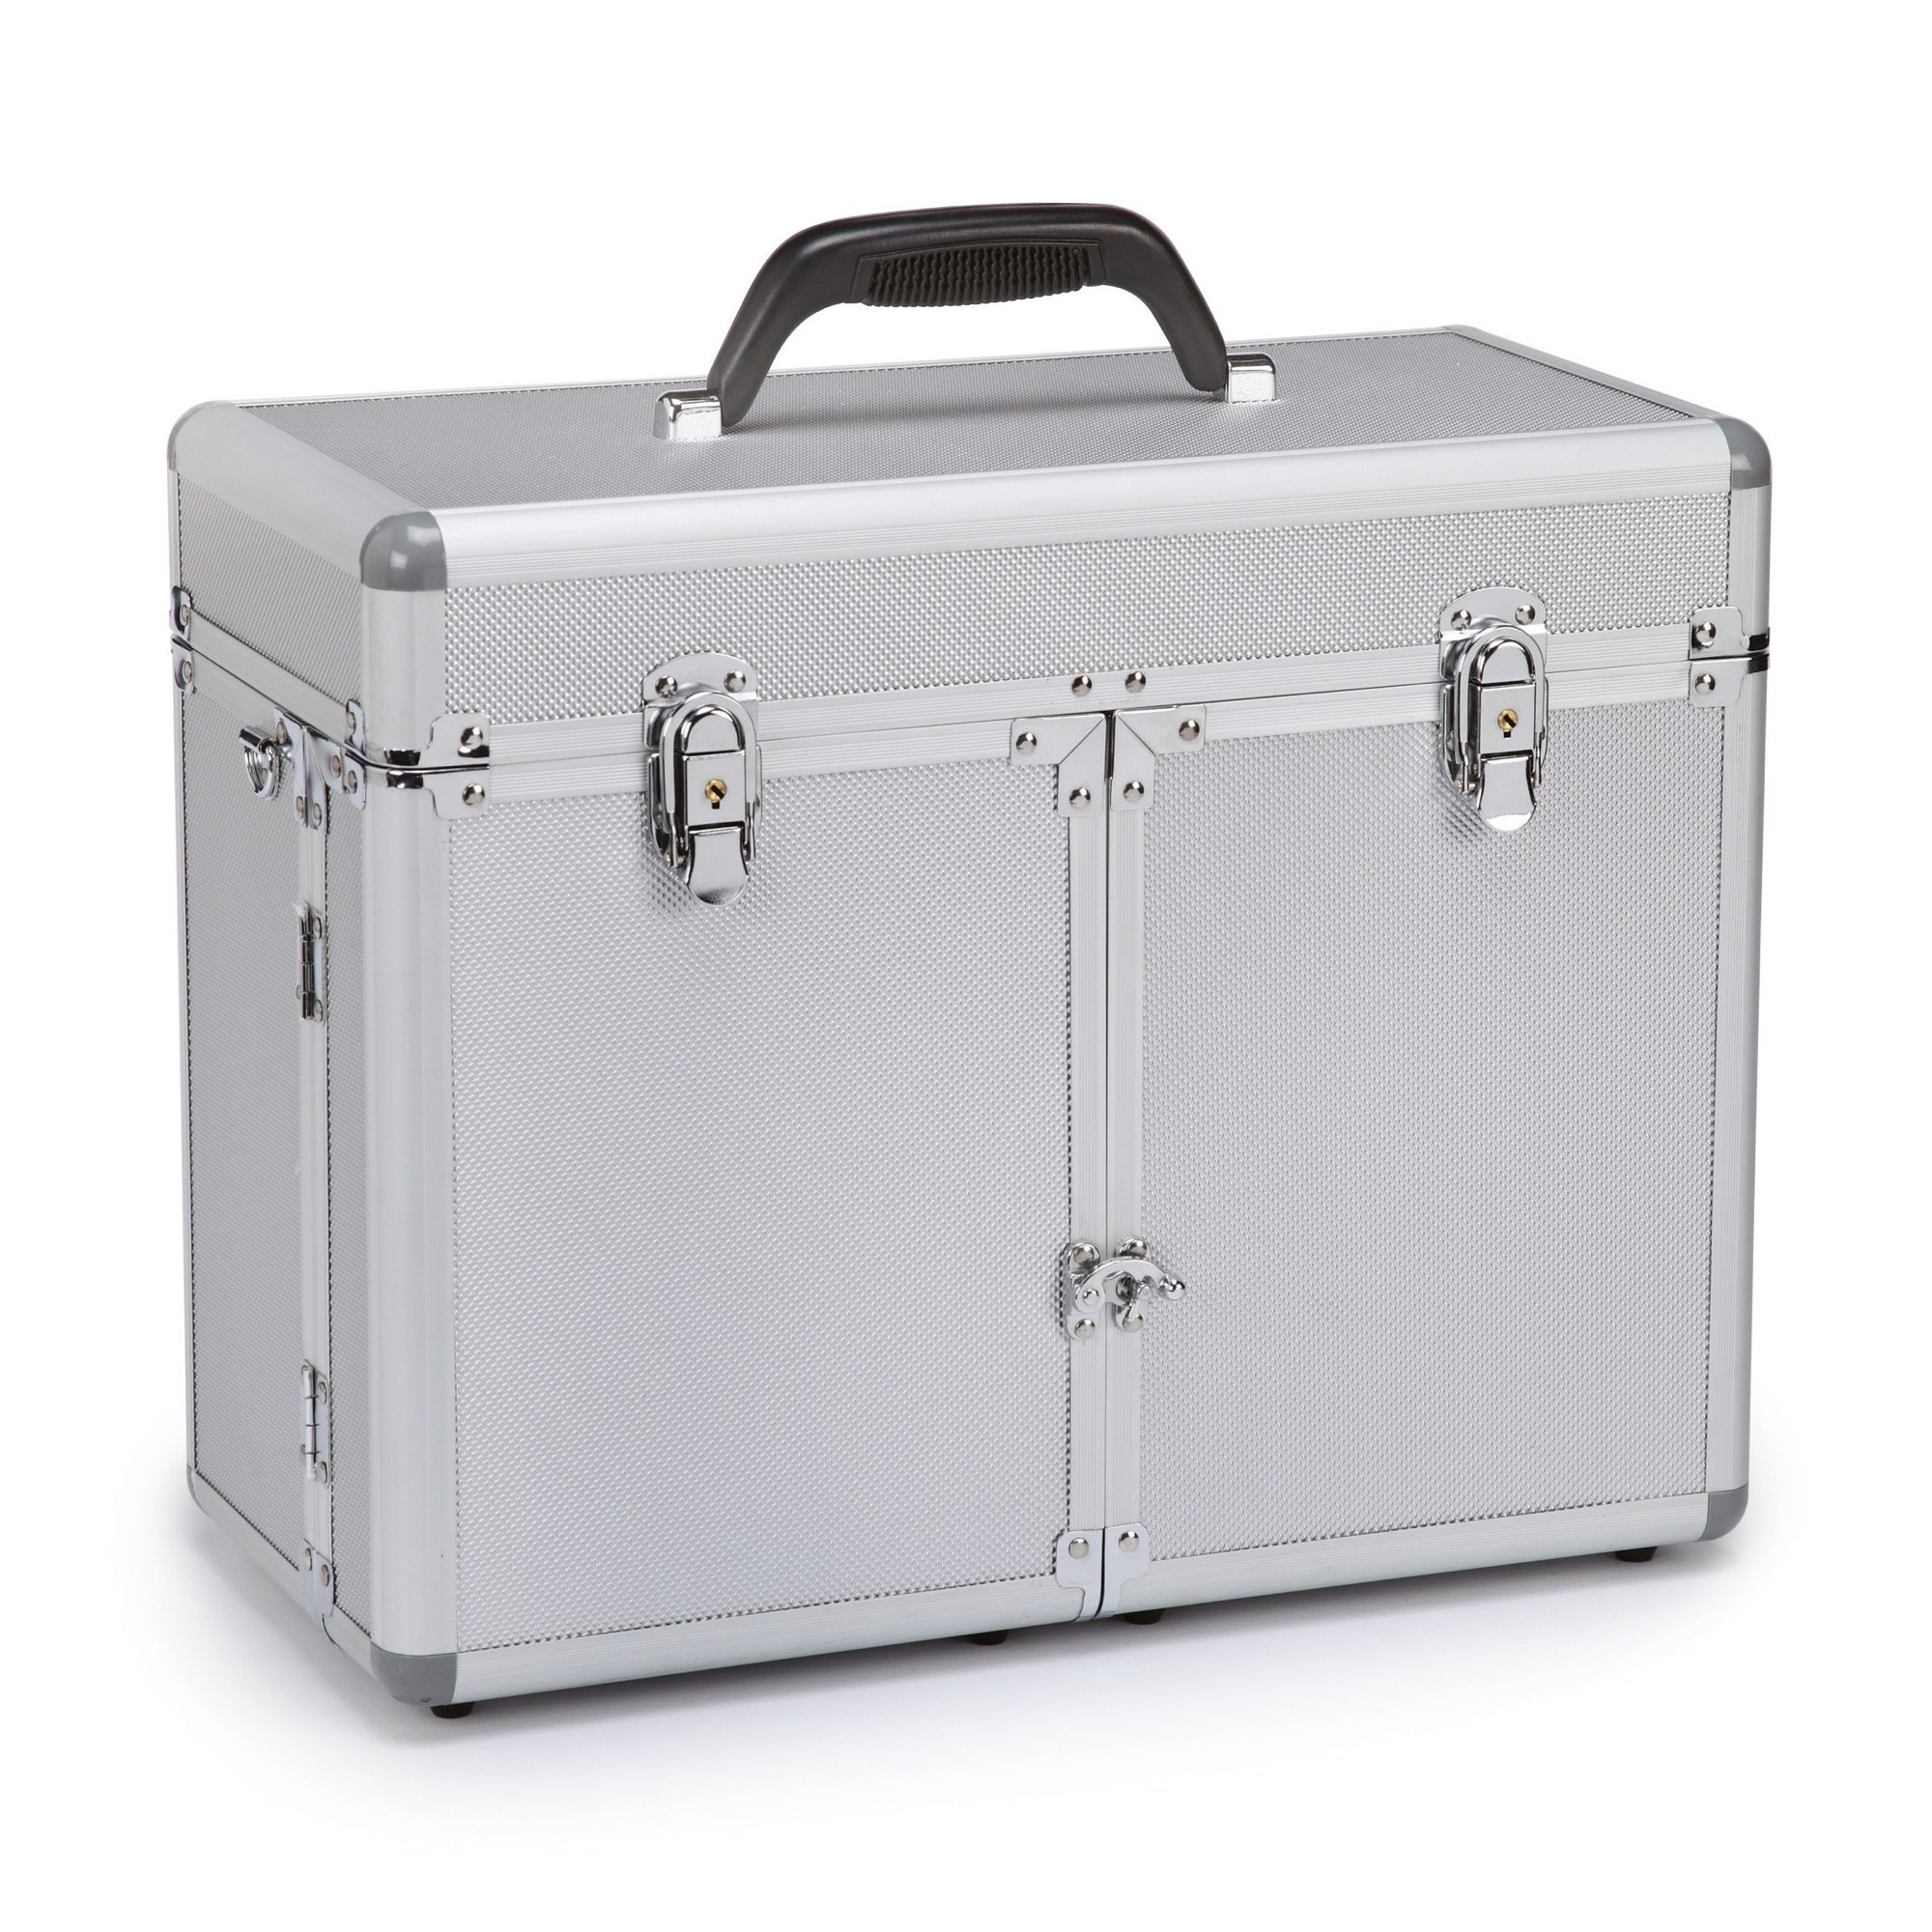 Top Performance Professional Grooming Tool Cases - Durable and Versatile Aluminum Cases Designed for the Storage of Grooming Tools and Supplies for the Professional Pet Groomer, Chrome by Top Performance